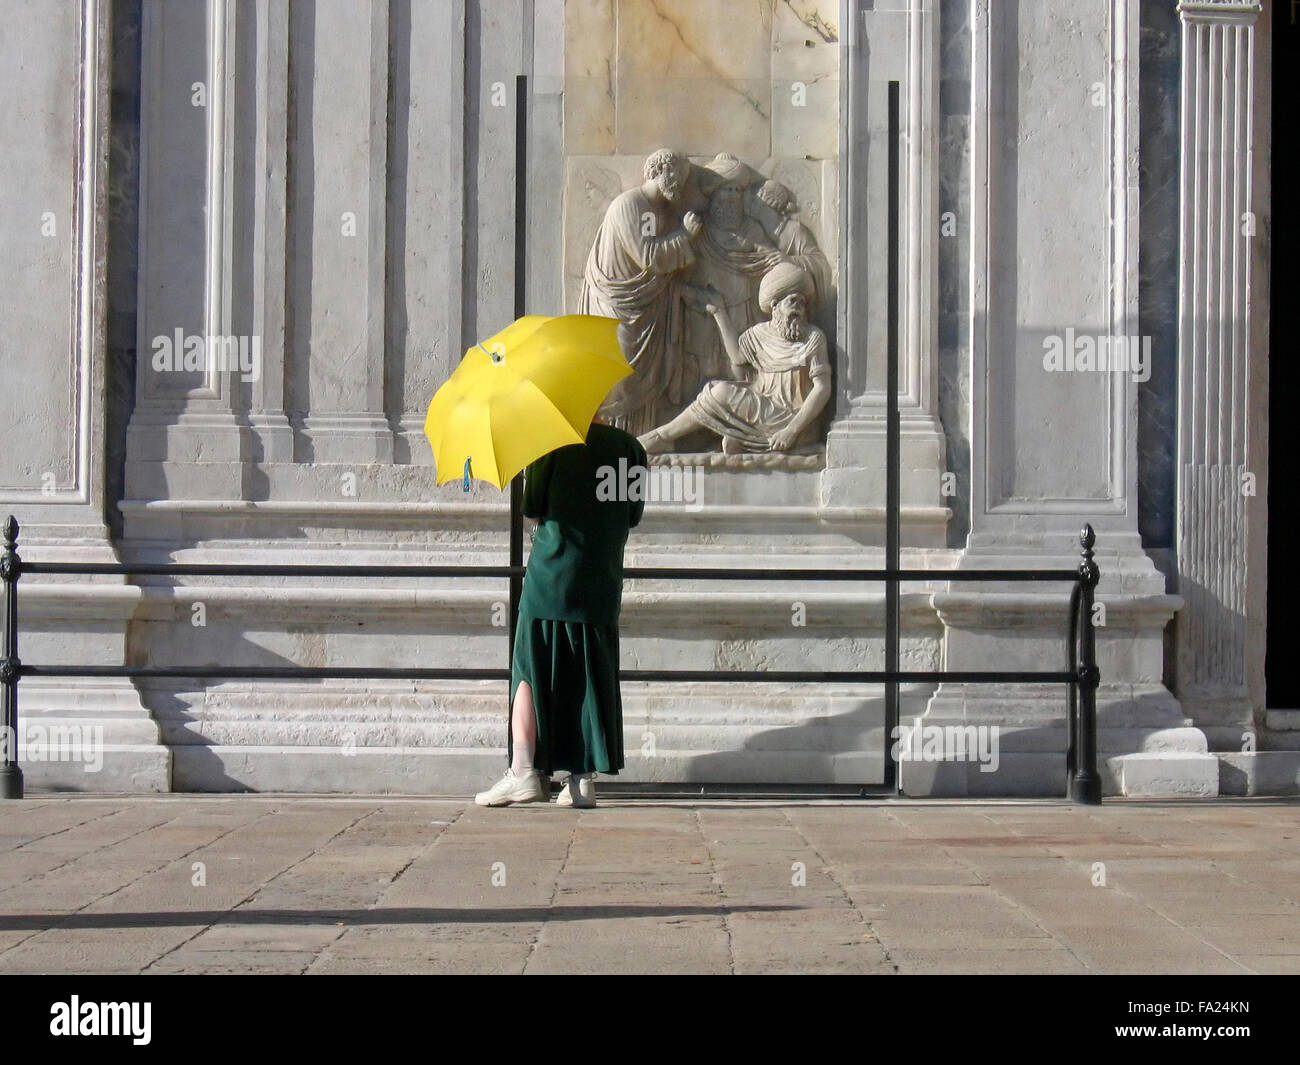 Lady with yellow umbrella watching statues in Venice,Italy - Stock Image